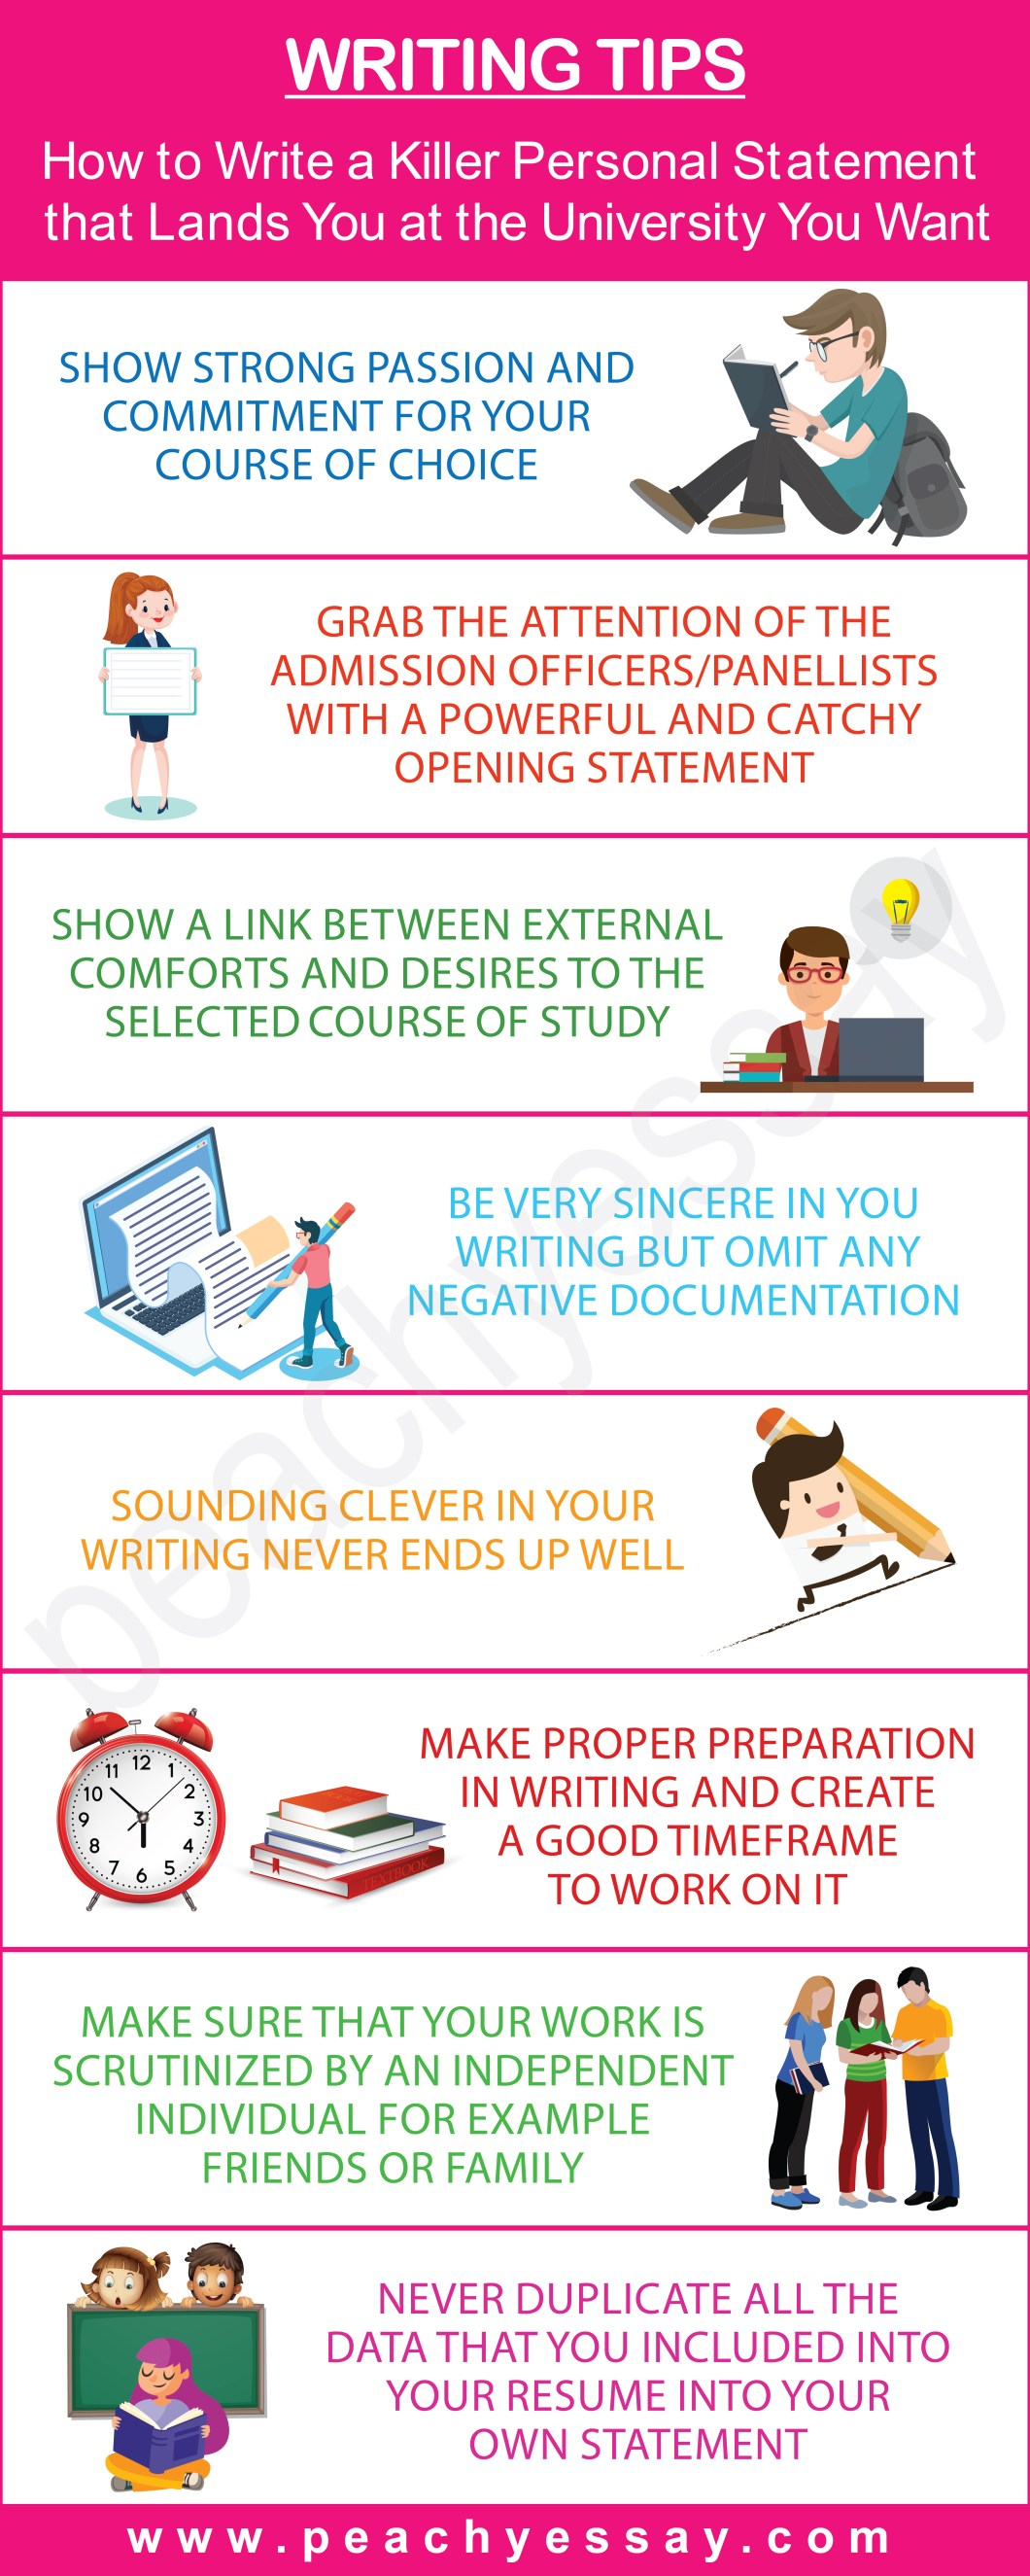 Express To Impress: Tips On Writing A Great Personal Statement - Infographic